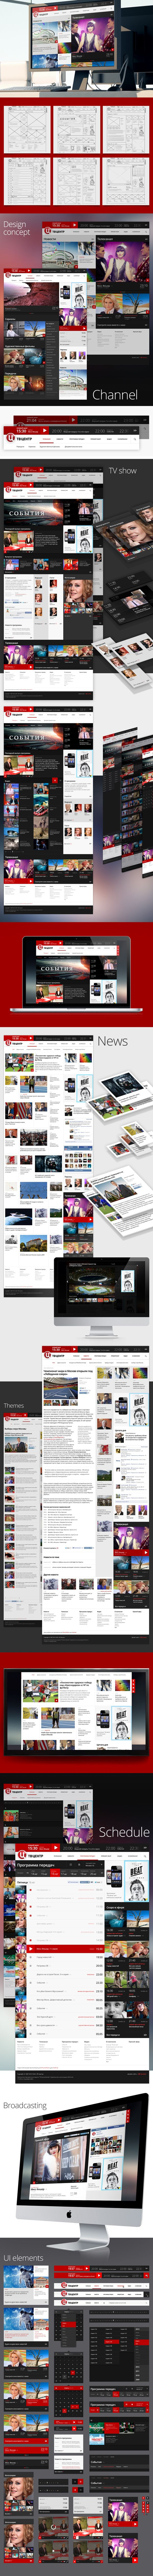 TVCenter on Behance  Design process from wireframes through to completion...